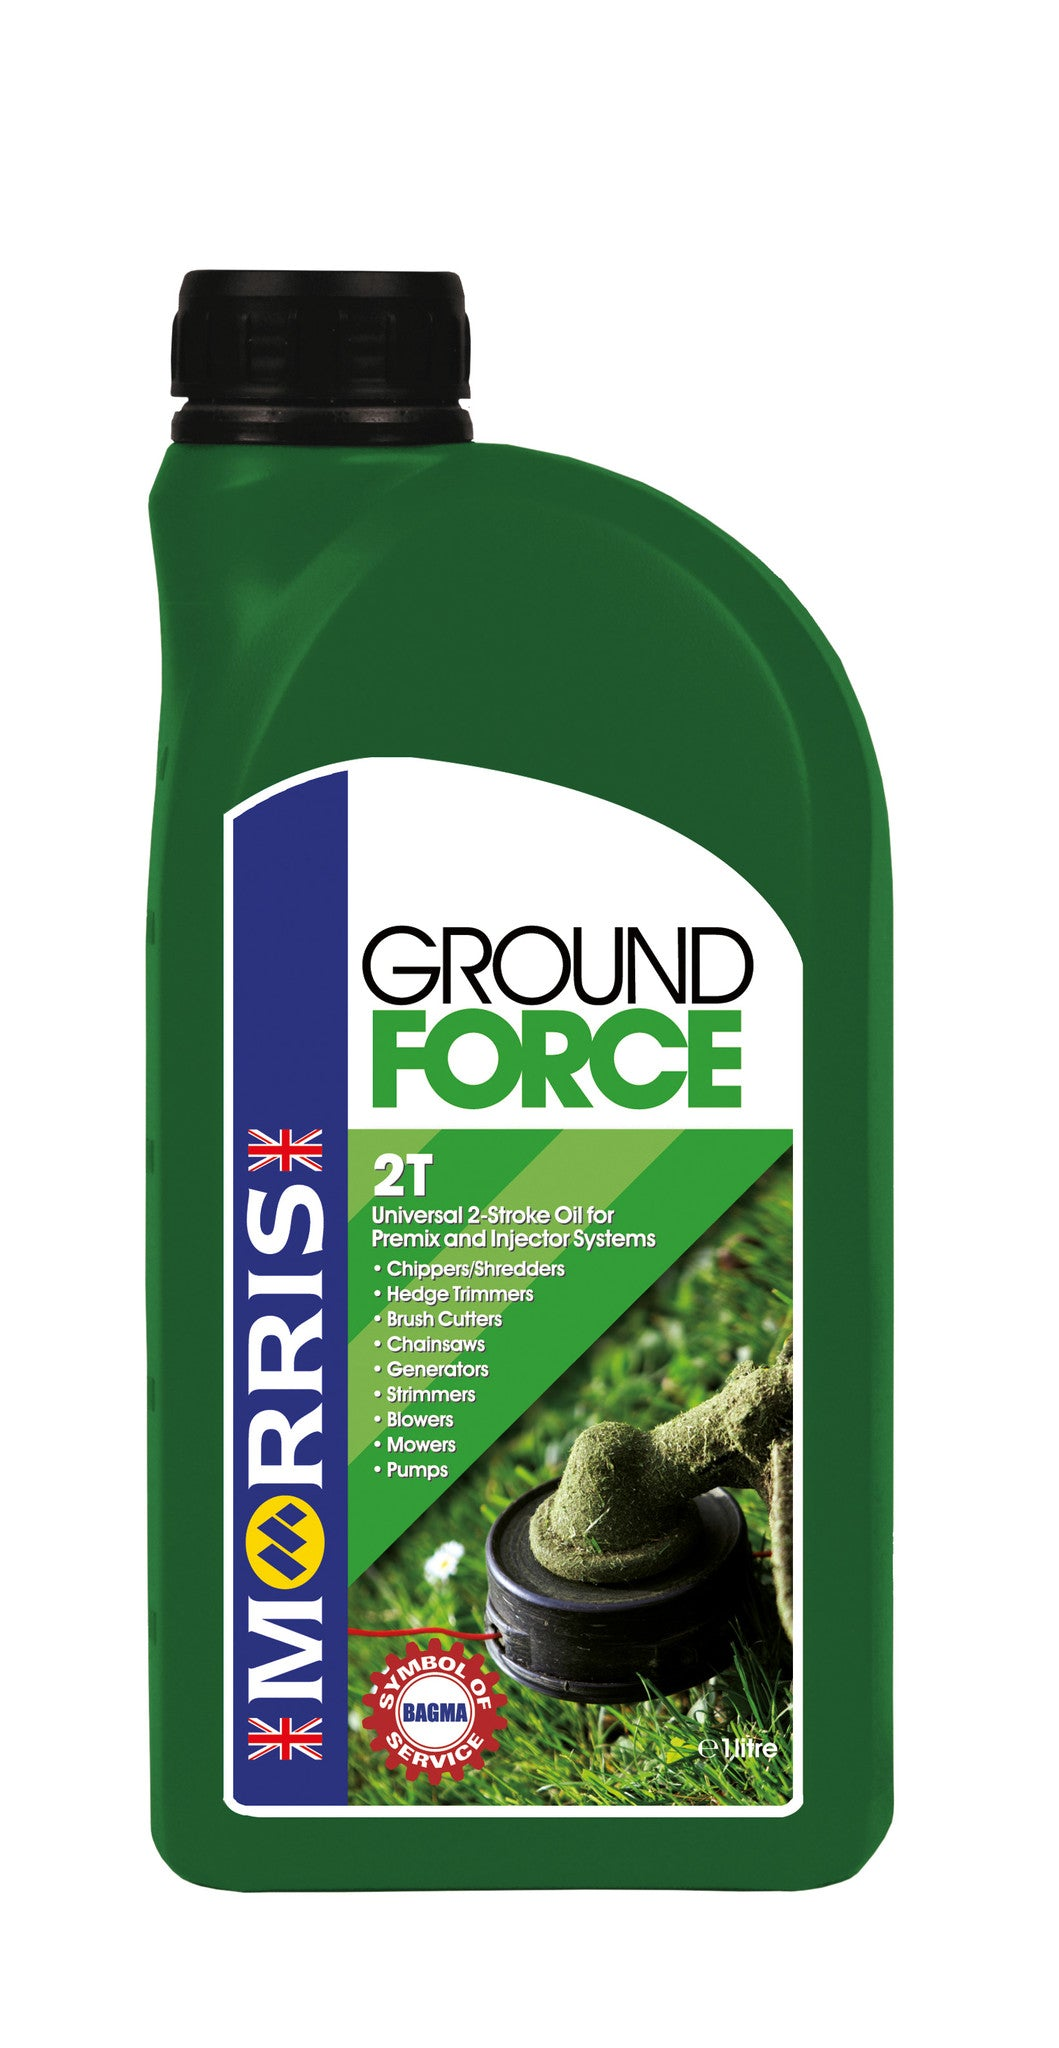 Ground Force 2T Universal 2-Stroke Oil